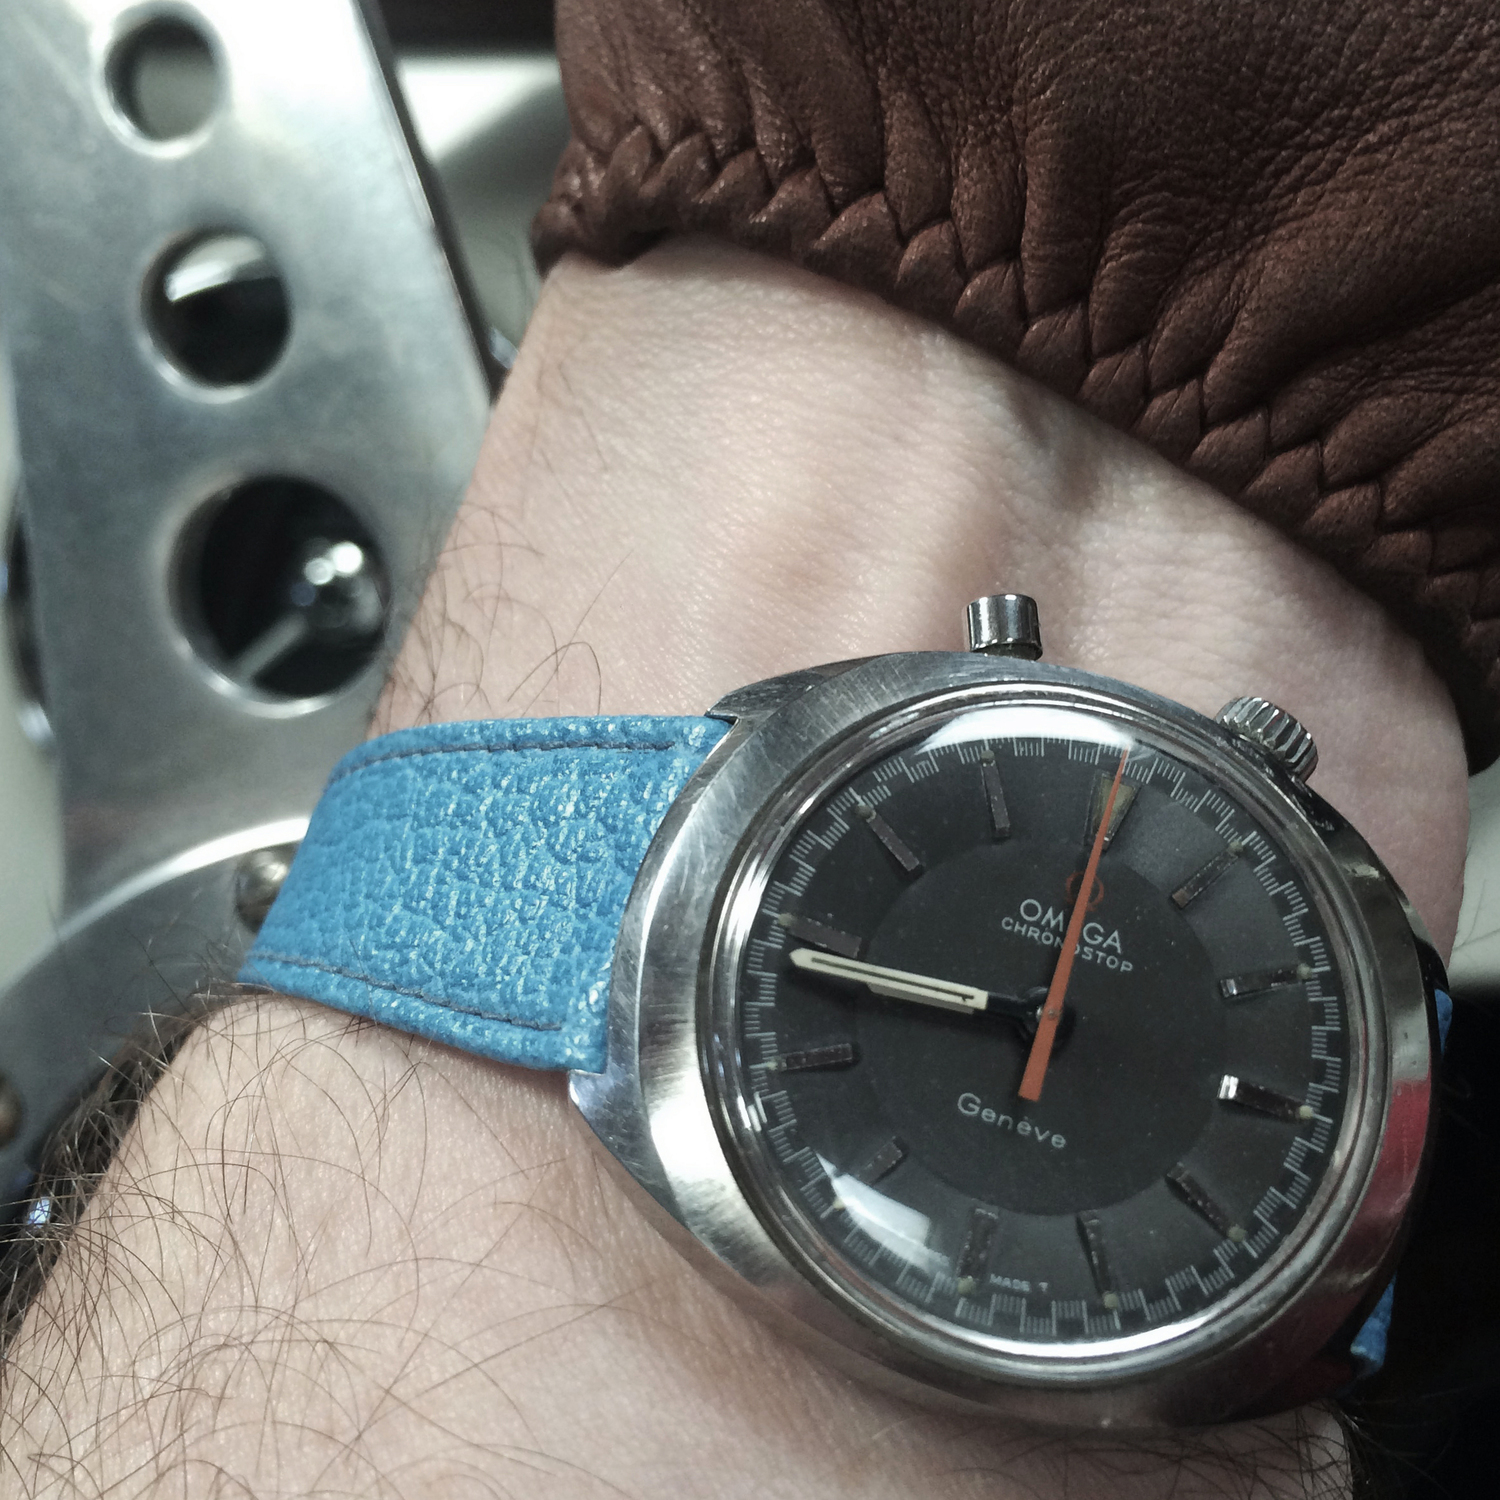 Wrist watch keeps stopping